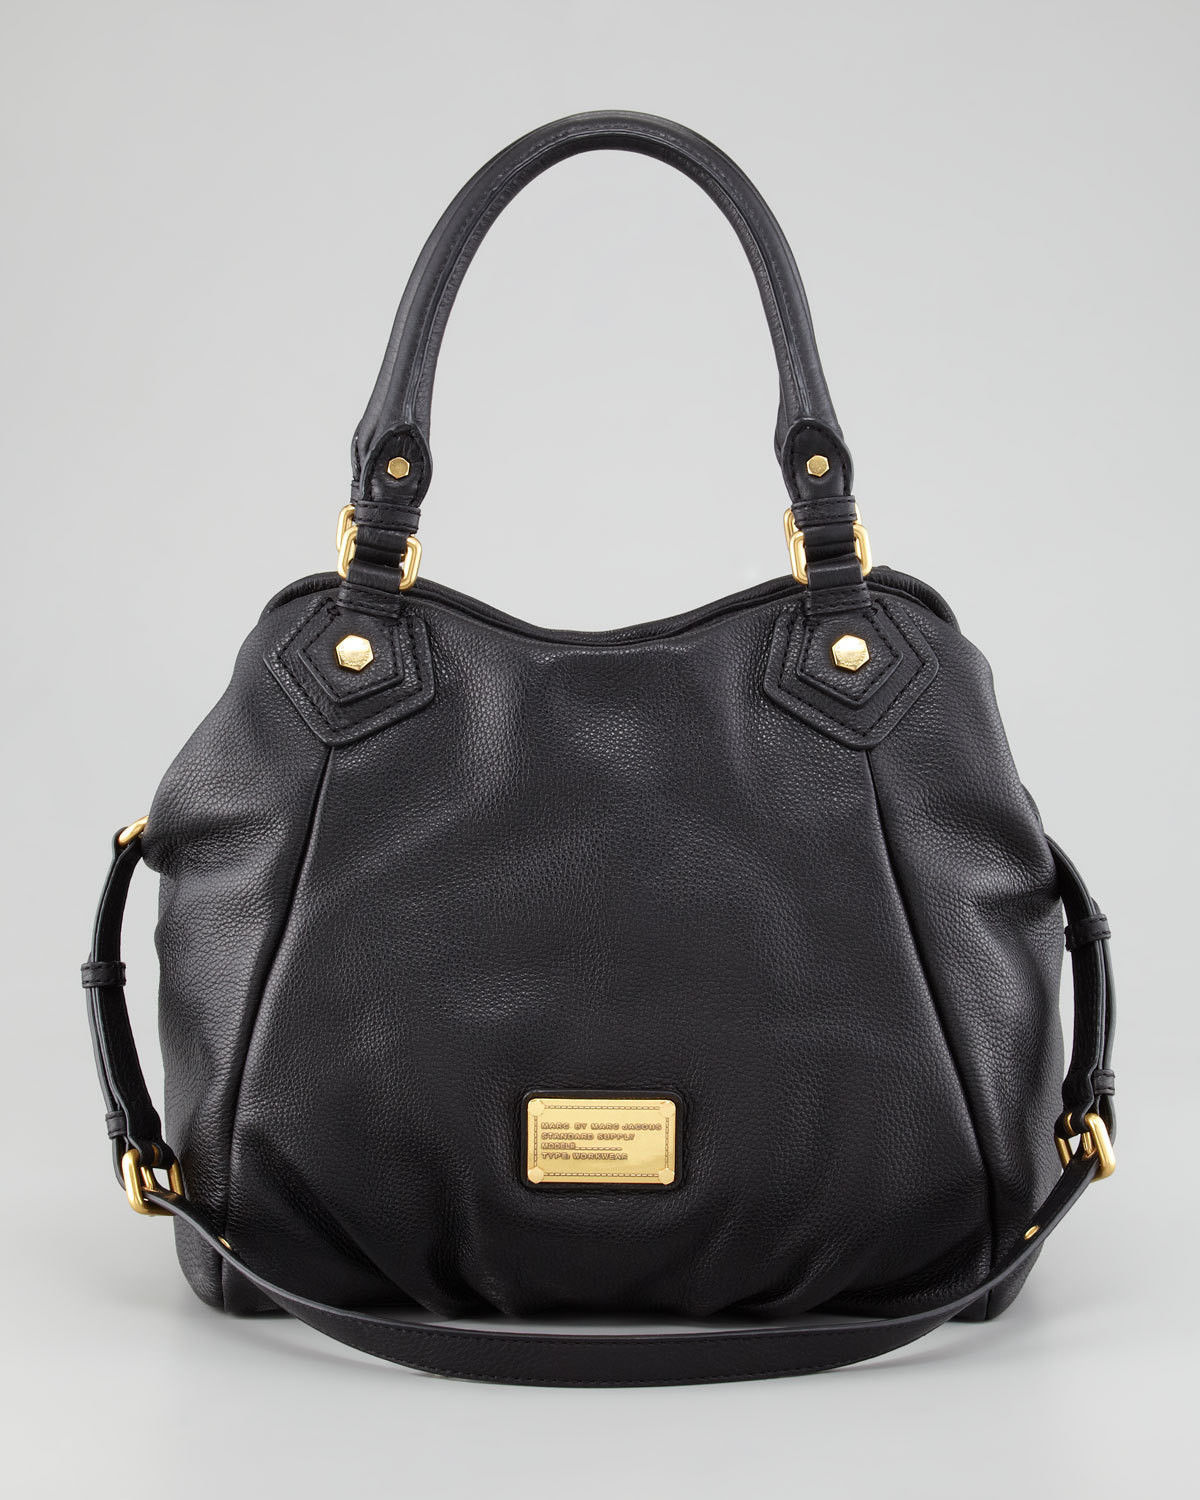 Primary image for NWT MARC BY MARC JACOBS Classic Q Fran Leather Shoulder Tote BLACK $480 AUTHENTC